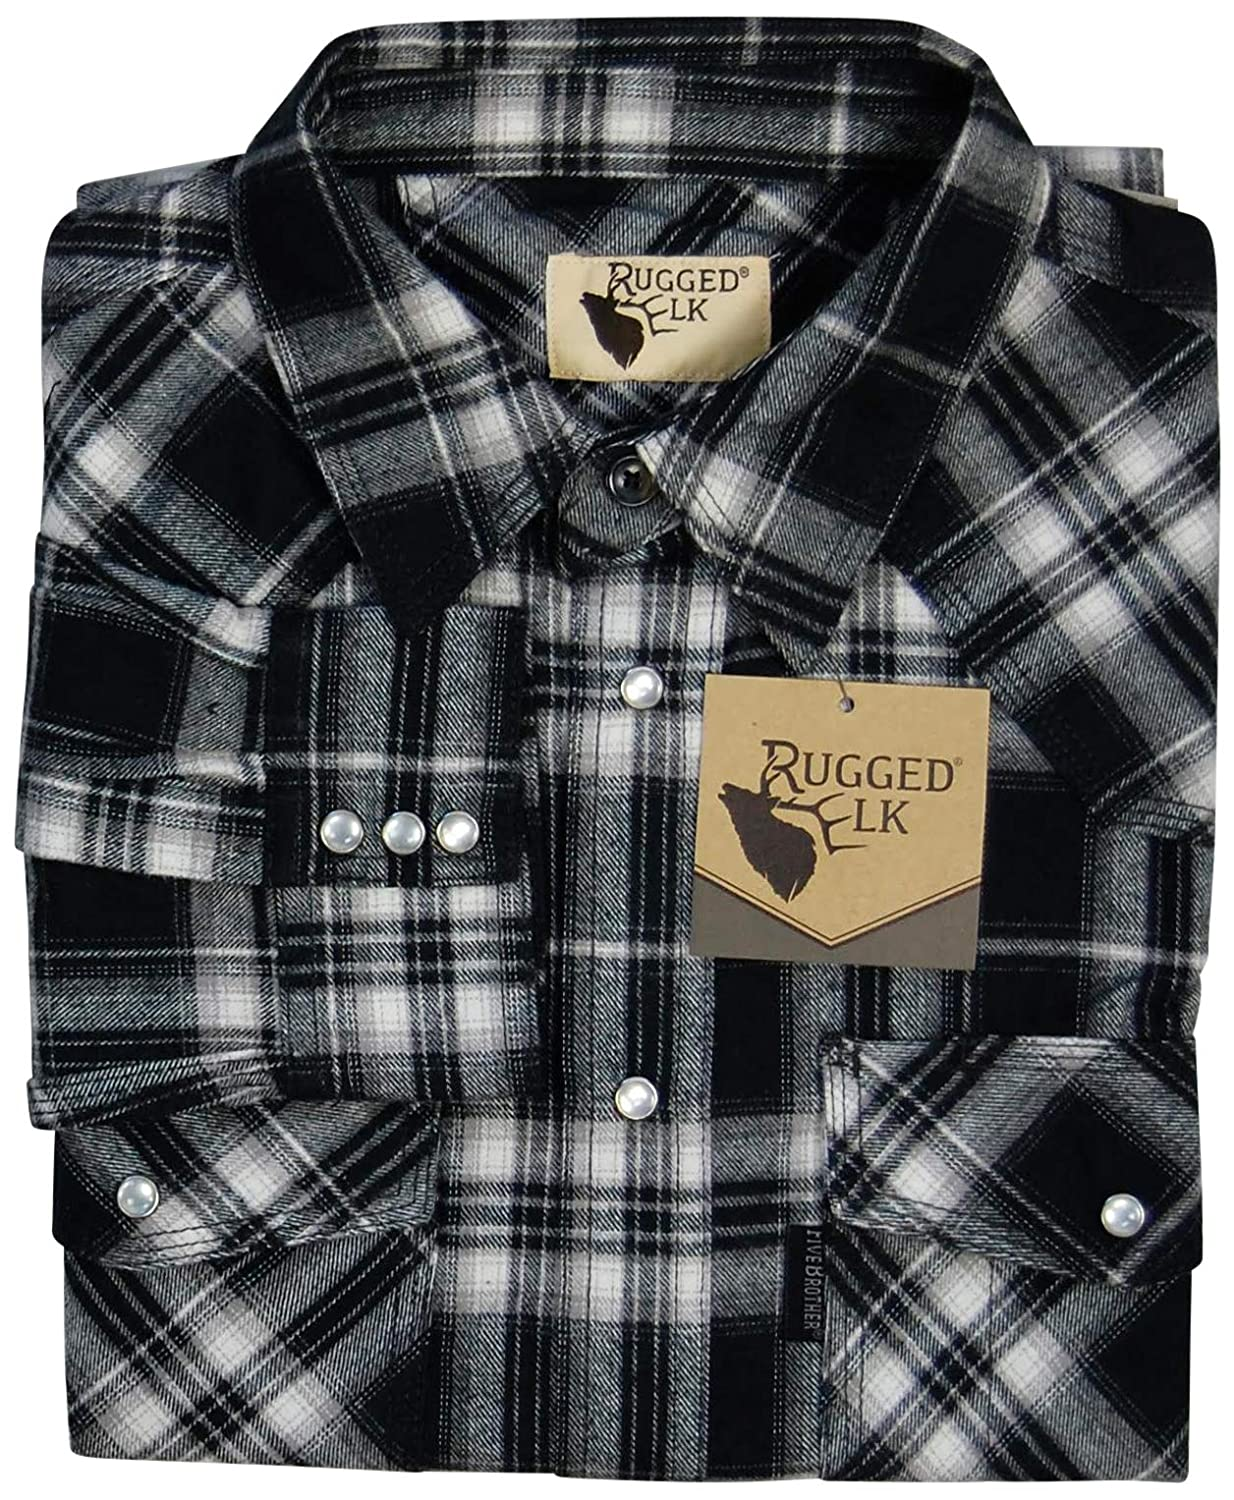 Easy Open Snap Front Rugged Elk Mens Midweight Flannel Shirt